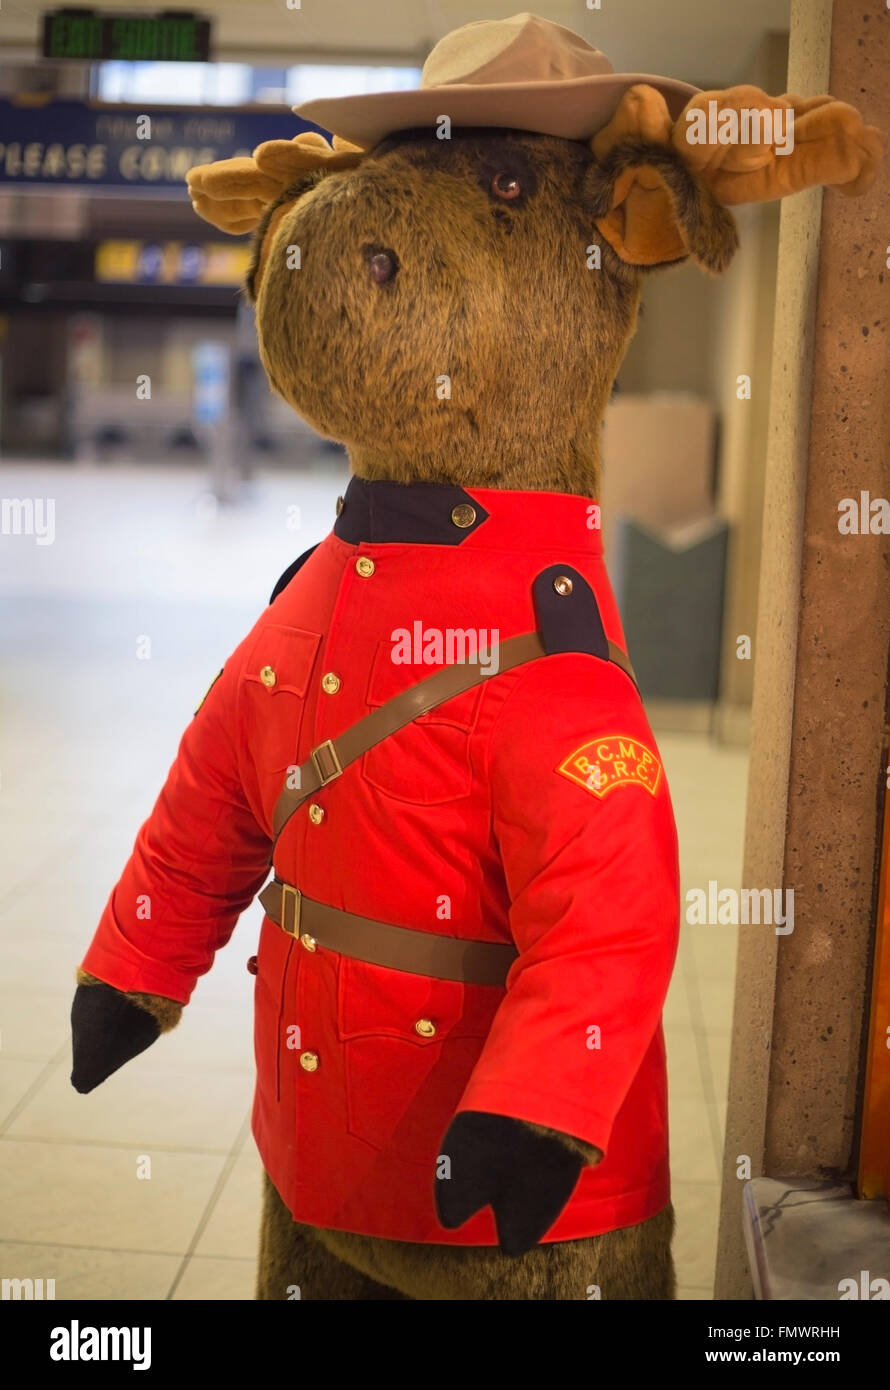 Moose dressed as a Canadian Mountie at Calgary airport - Stock Image